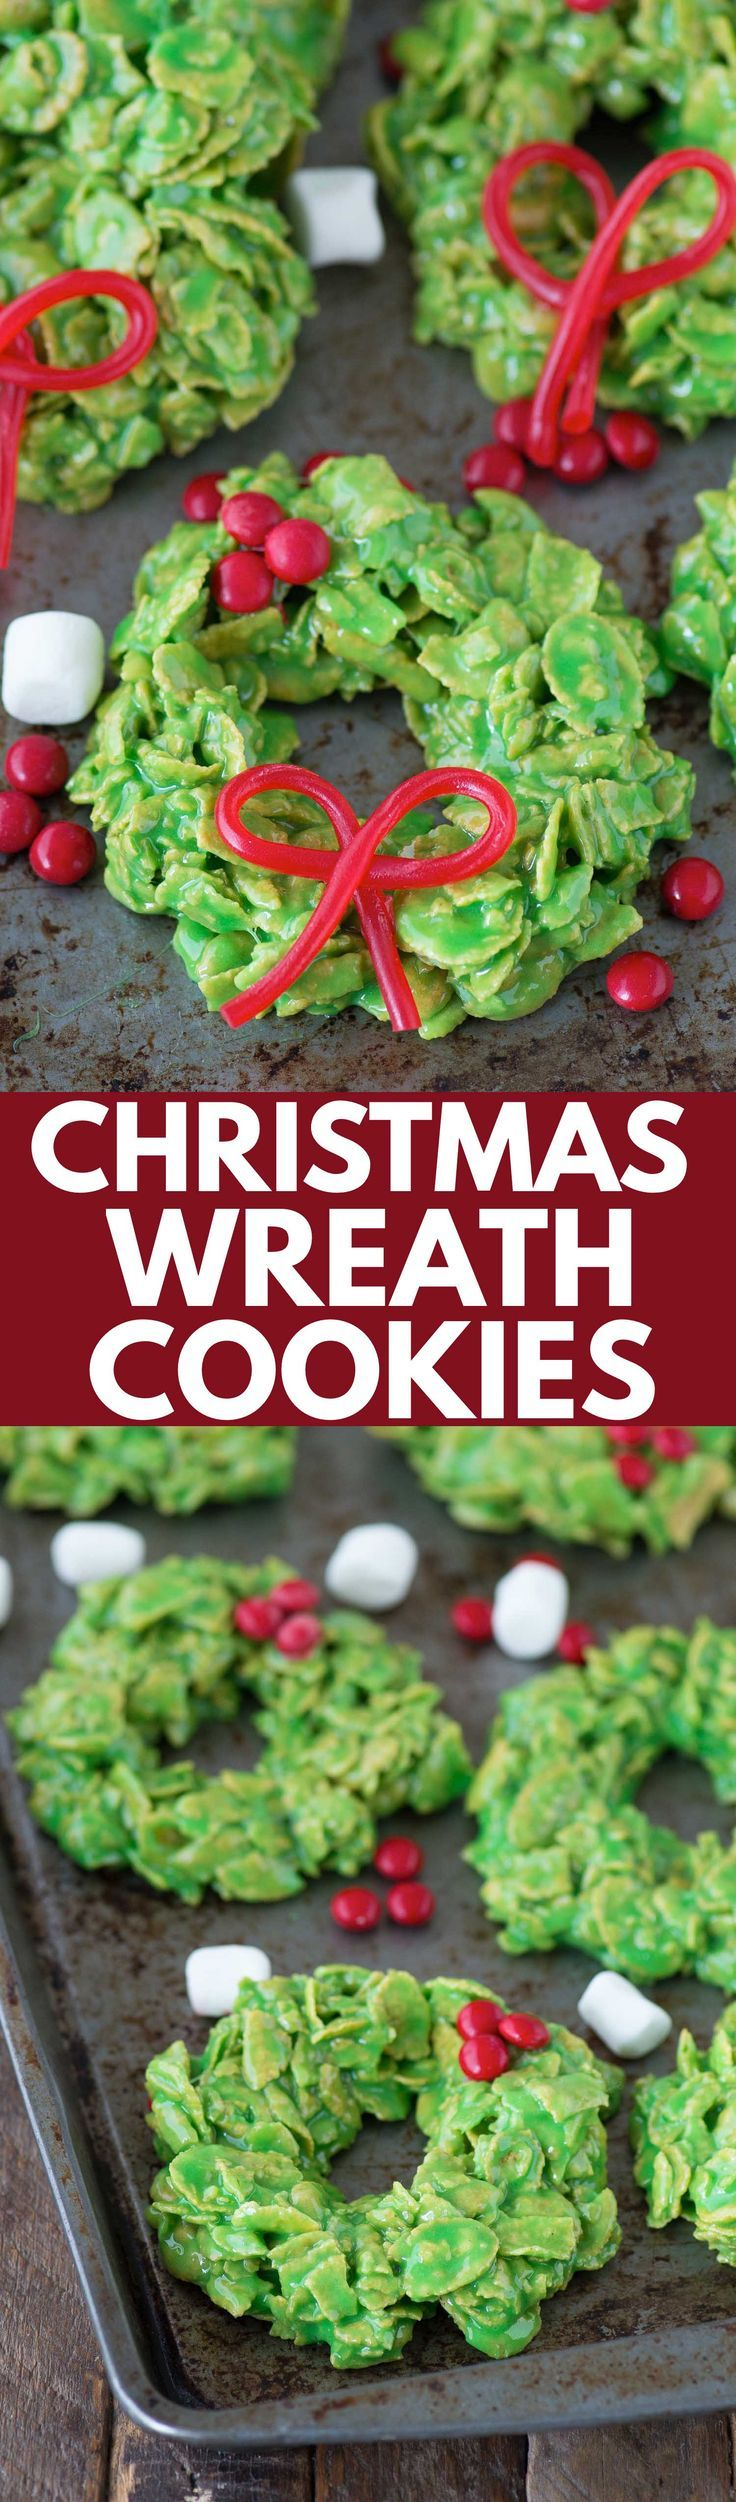 No bake christmas wreath cookies made with corn flakes and marshmallows! These onl